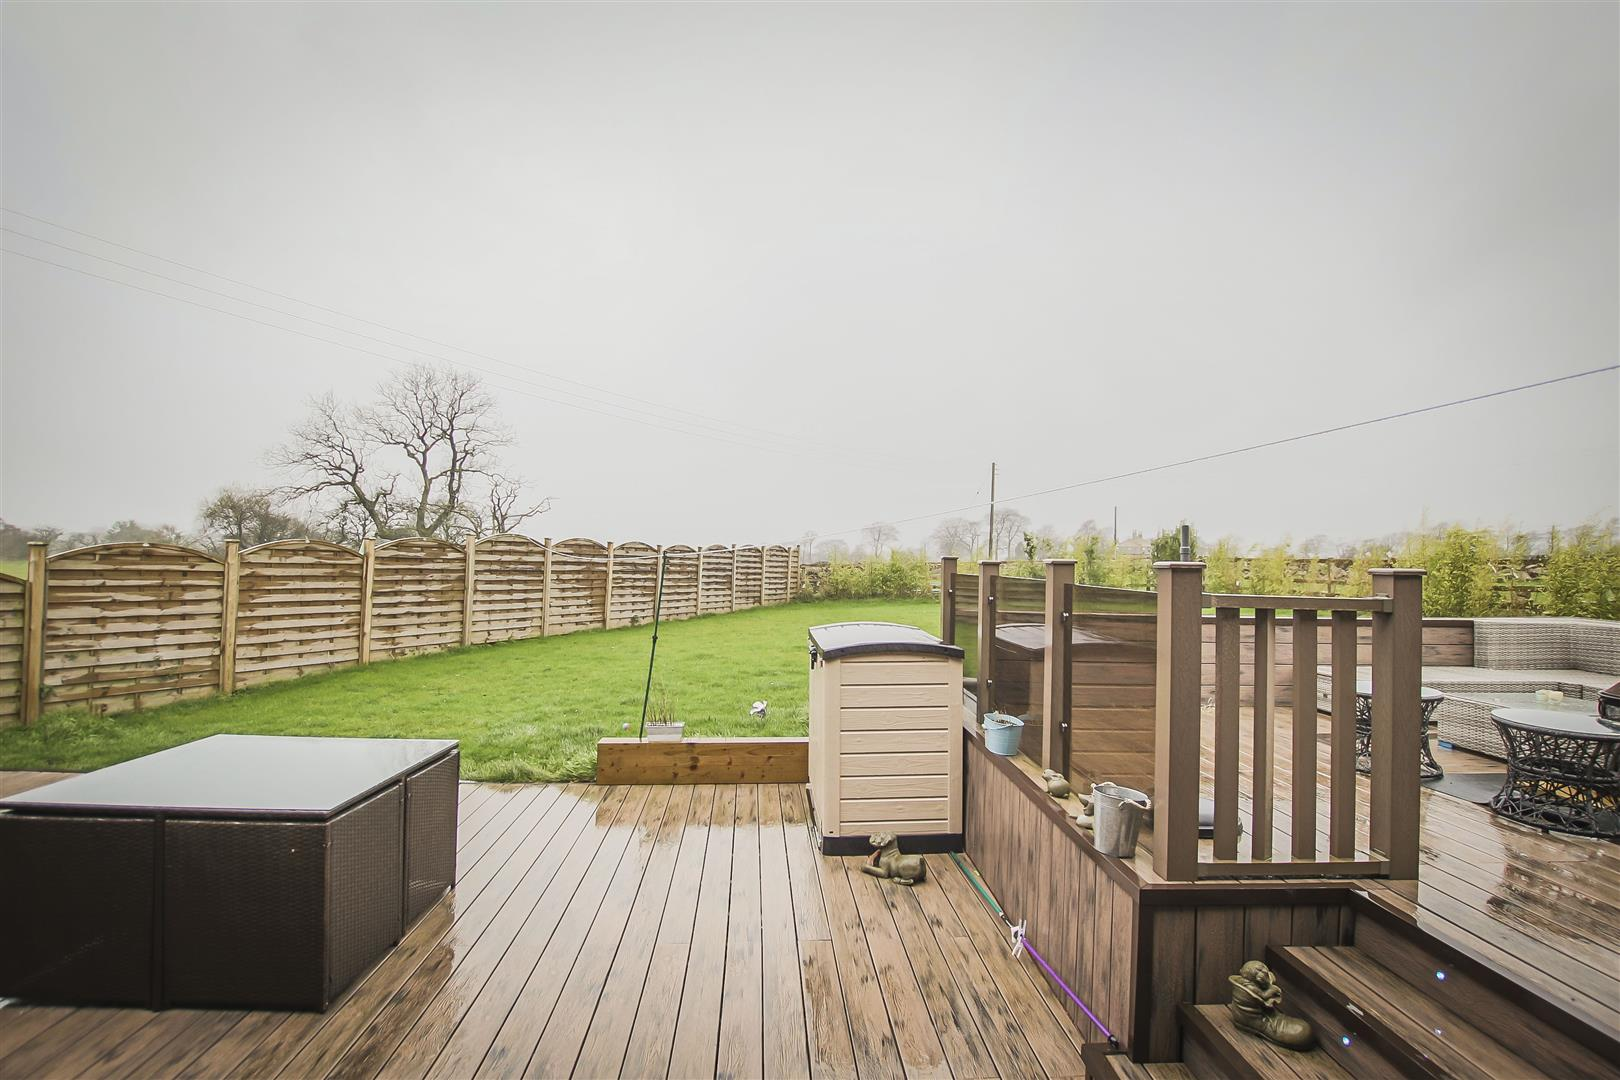 4 Bedroom Barn Conversion For Sale - Rear Garden